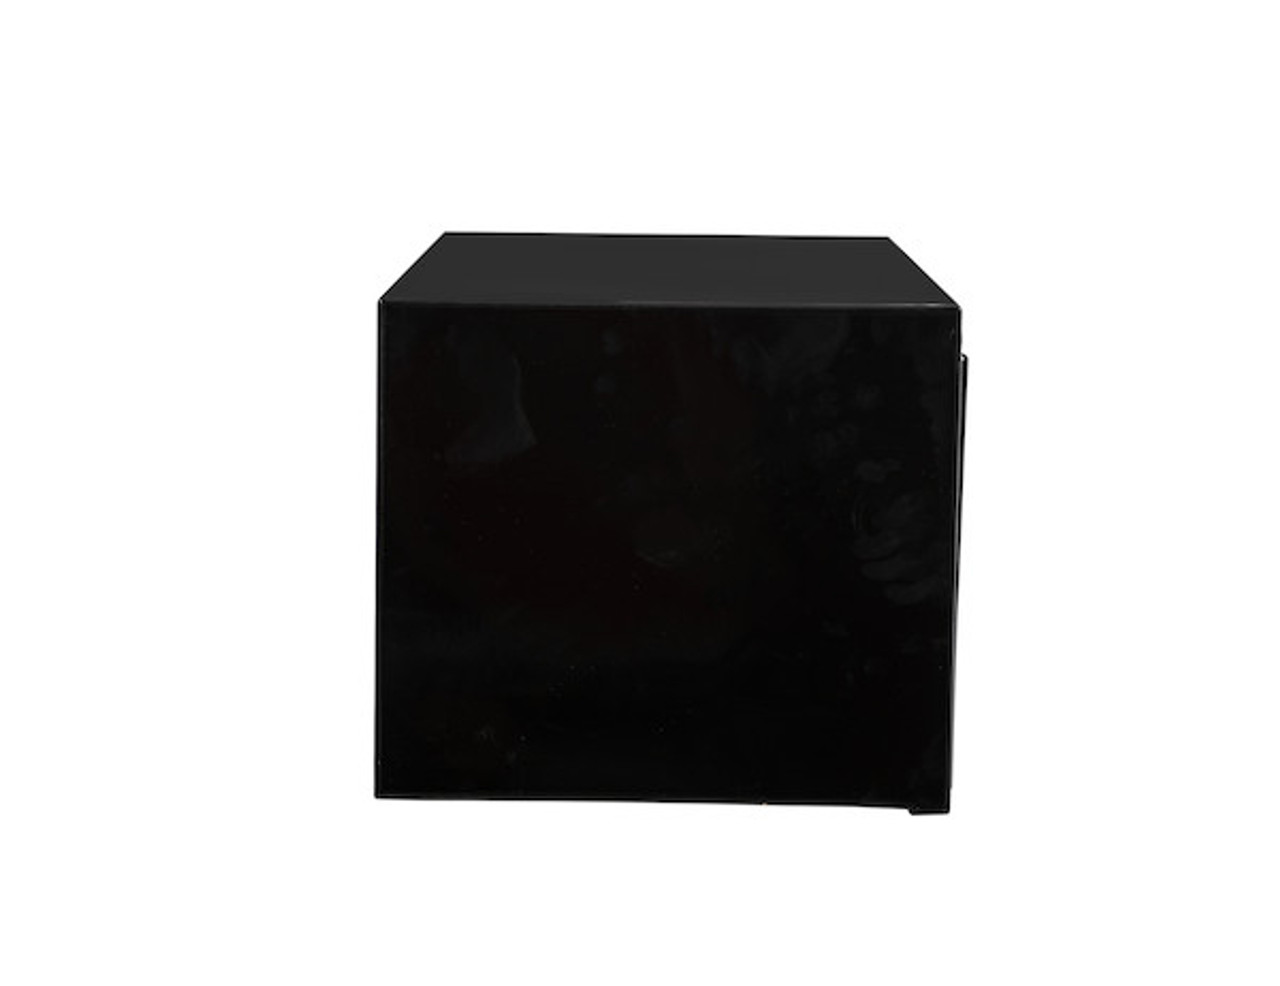 """1703304 BUYERS PRODUCTS BLACK STEEL UNDERBODY TRUCK TOOL BOX WITH BUILT-IN SHELF 14""""HX16""""DX30""""W Picture # 4"""